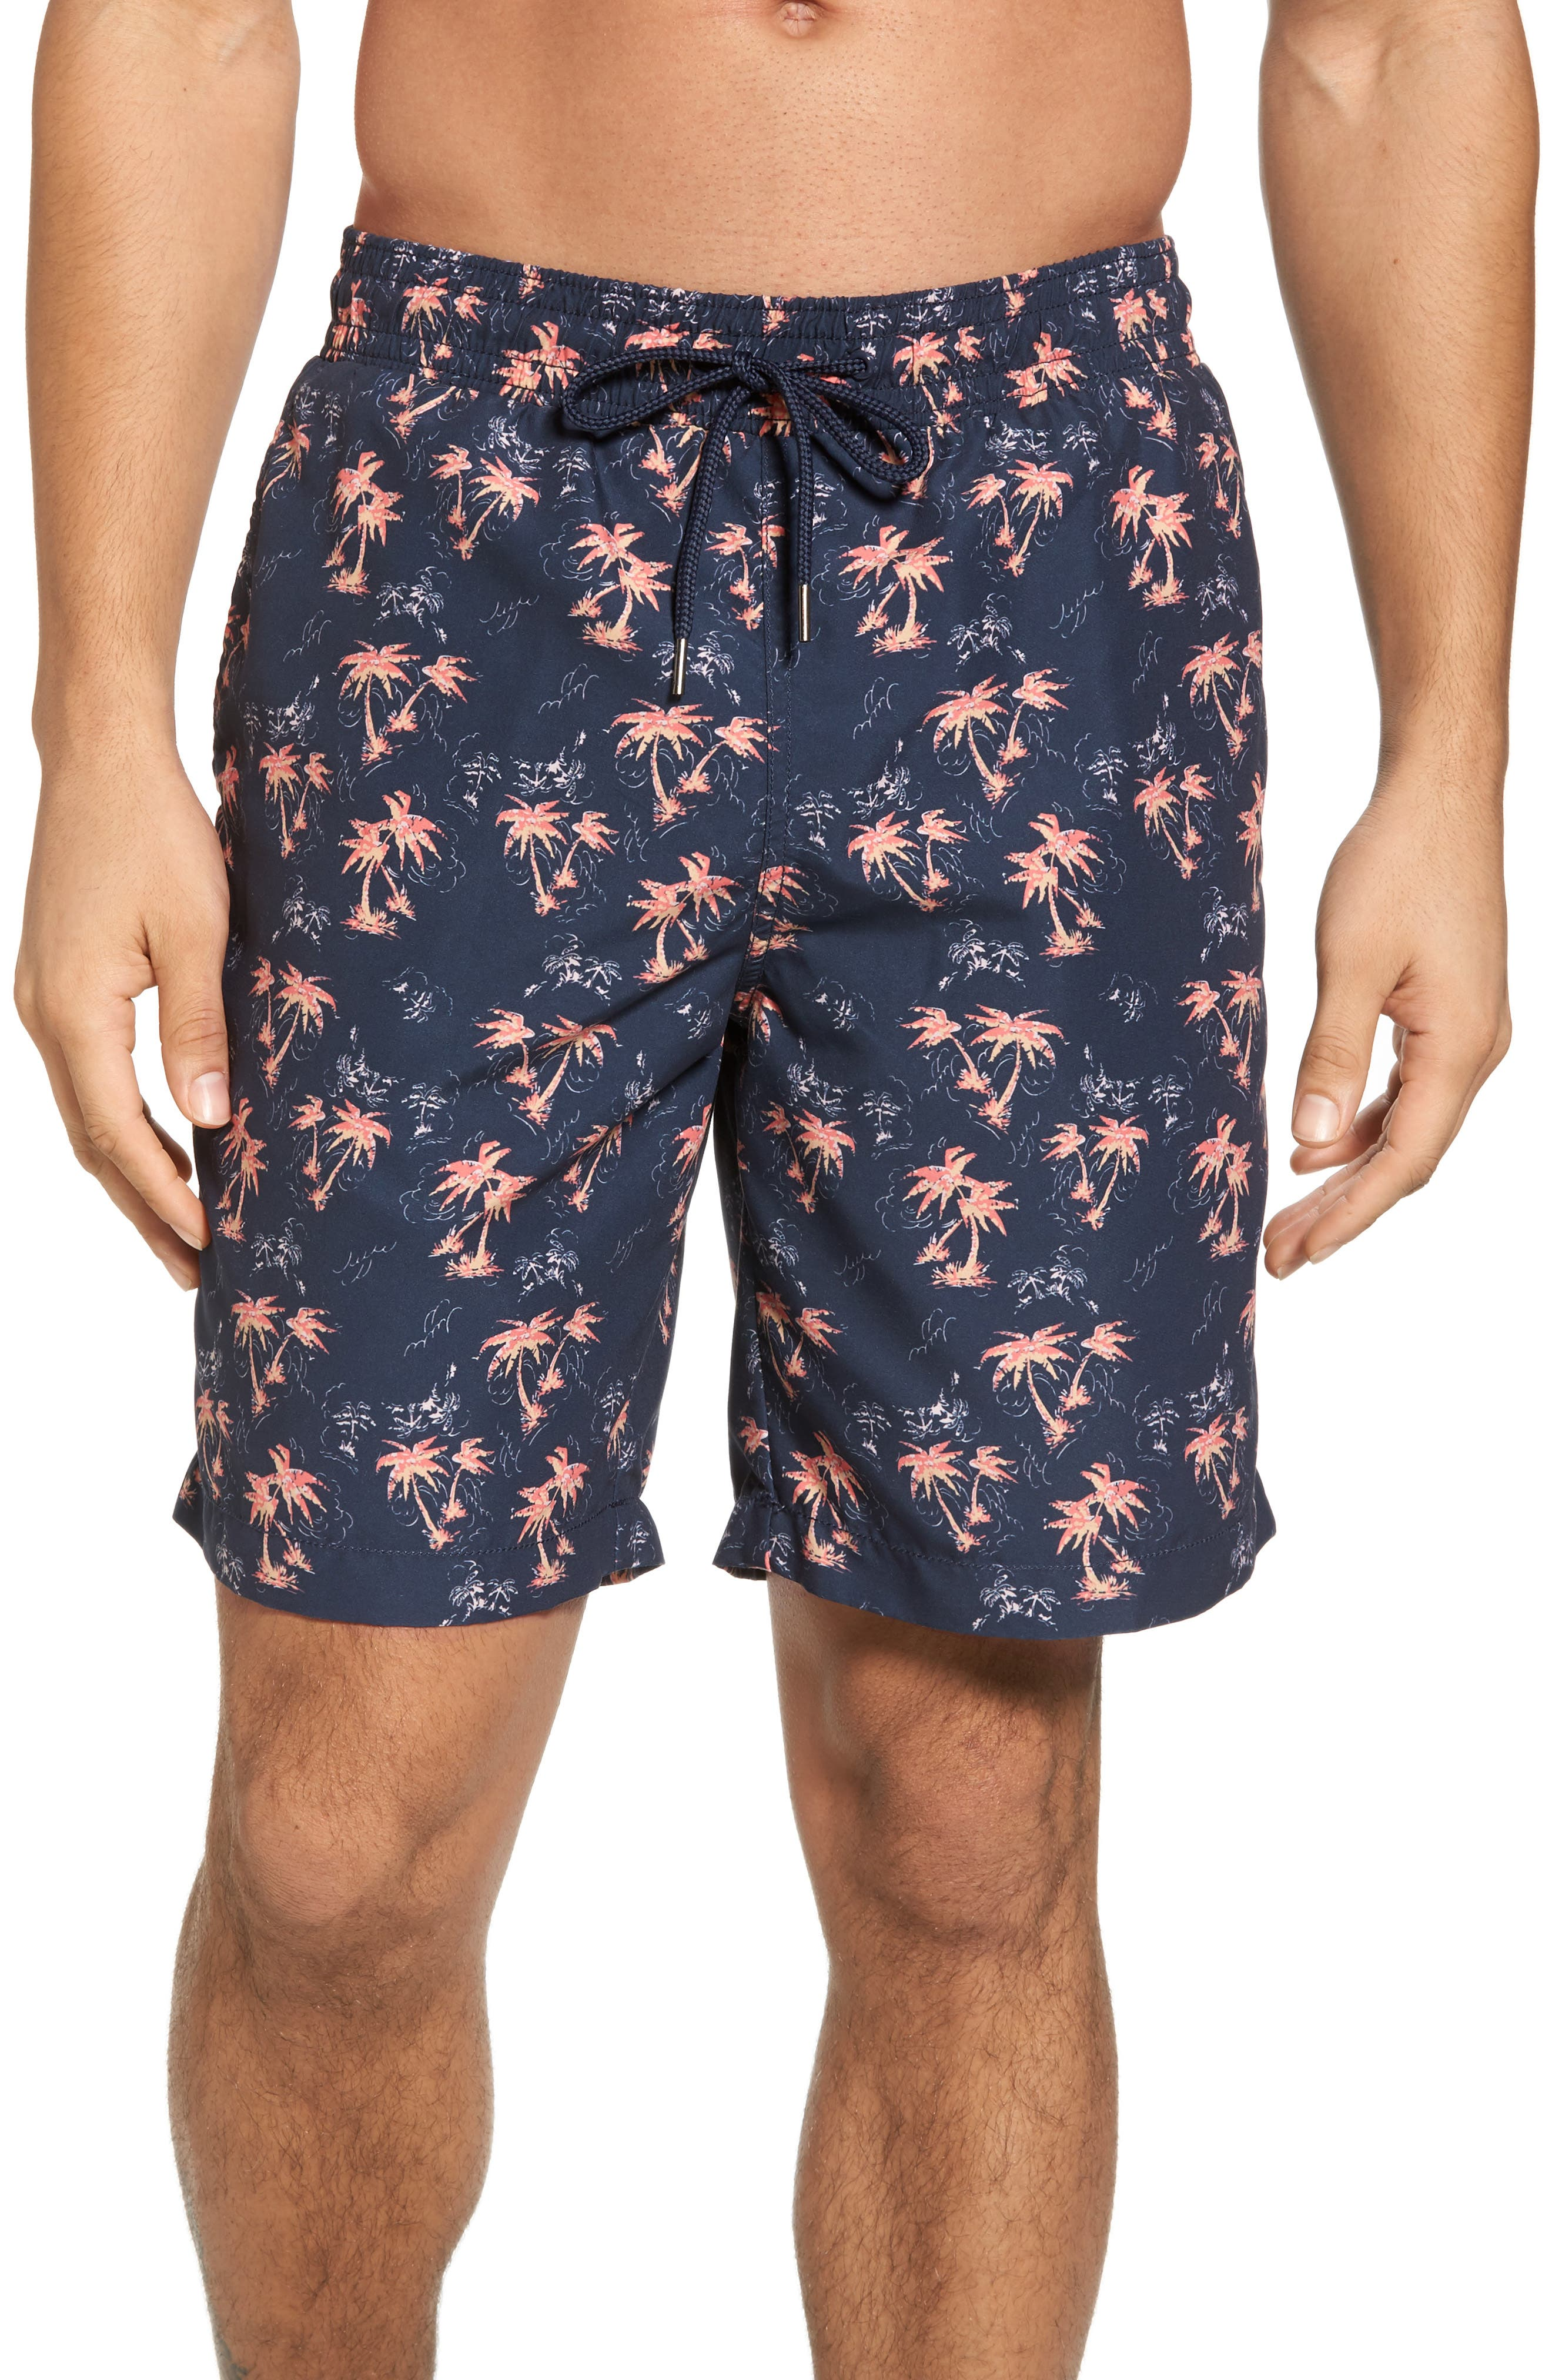 Burning Palm Swim Trunks,                             Main thumbnail 1, color,                             Carbon Spice Coral